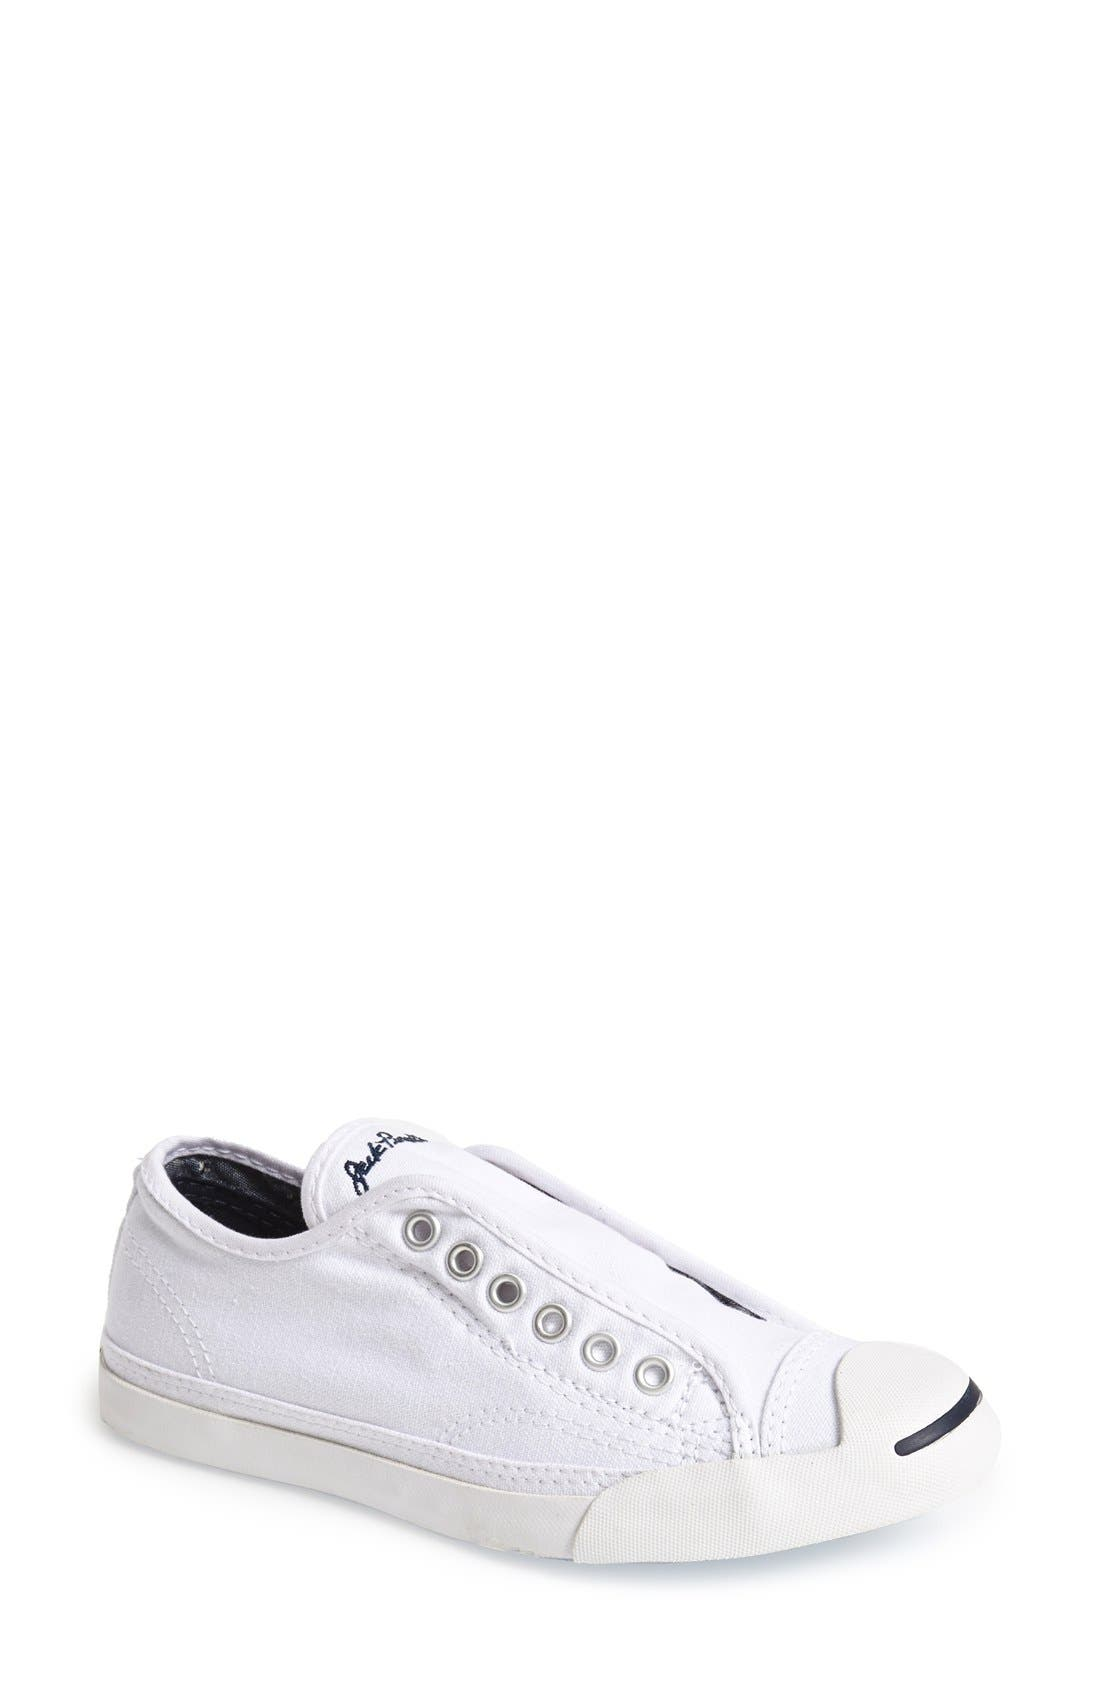 Jack Purcell Low Top Sneaker,                             Main thumbnail 1, color,                             OPTIC WHITE